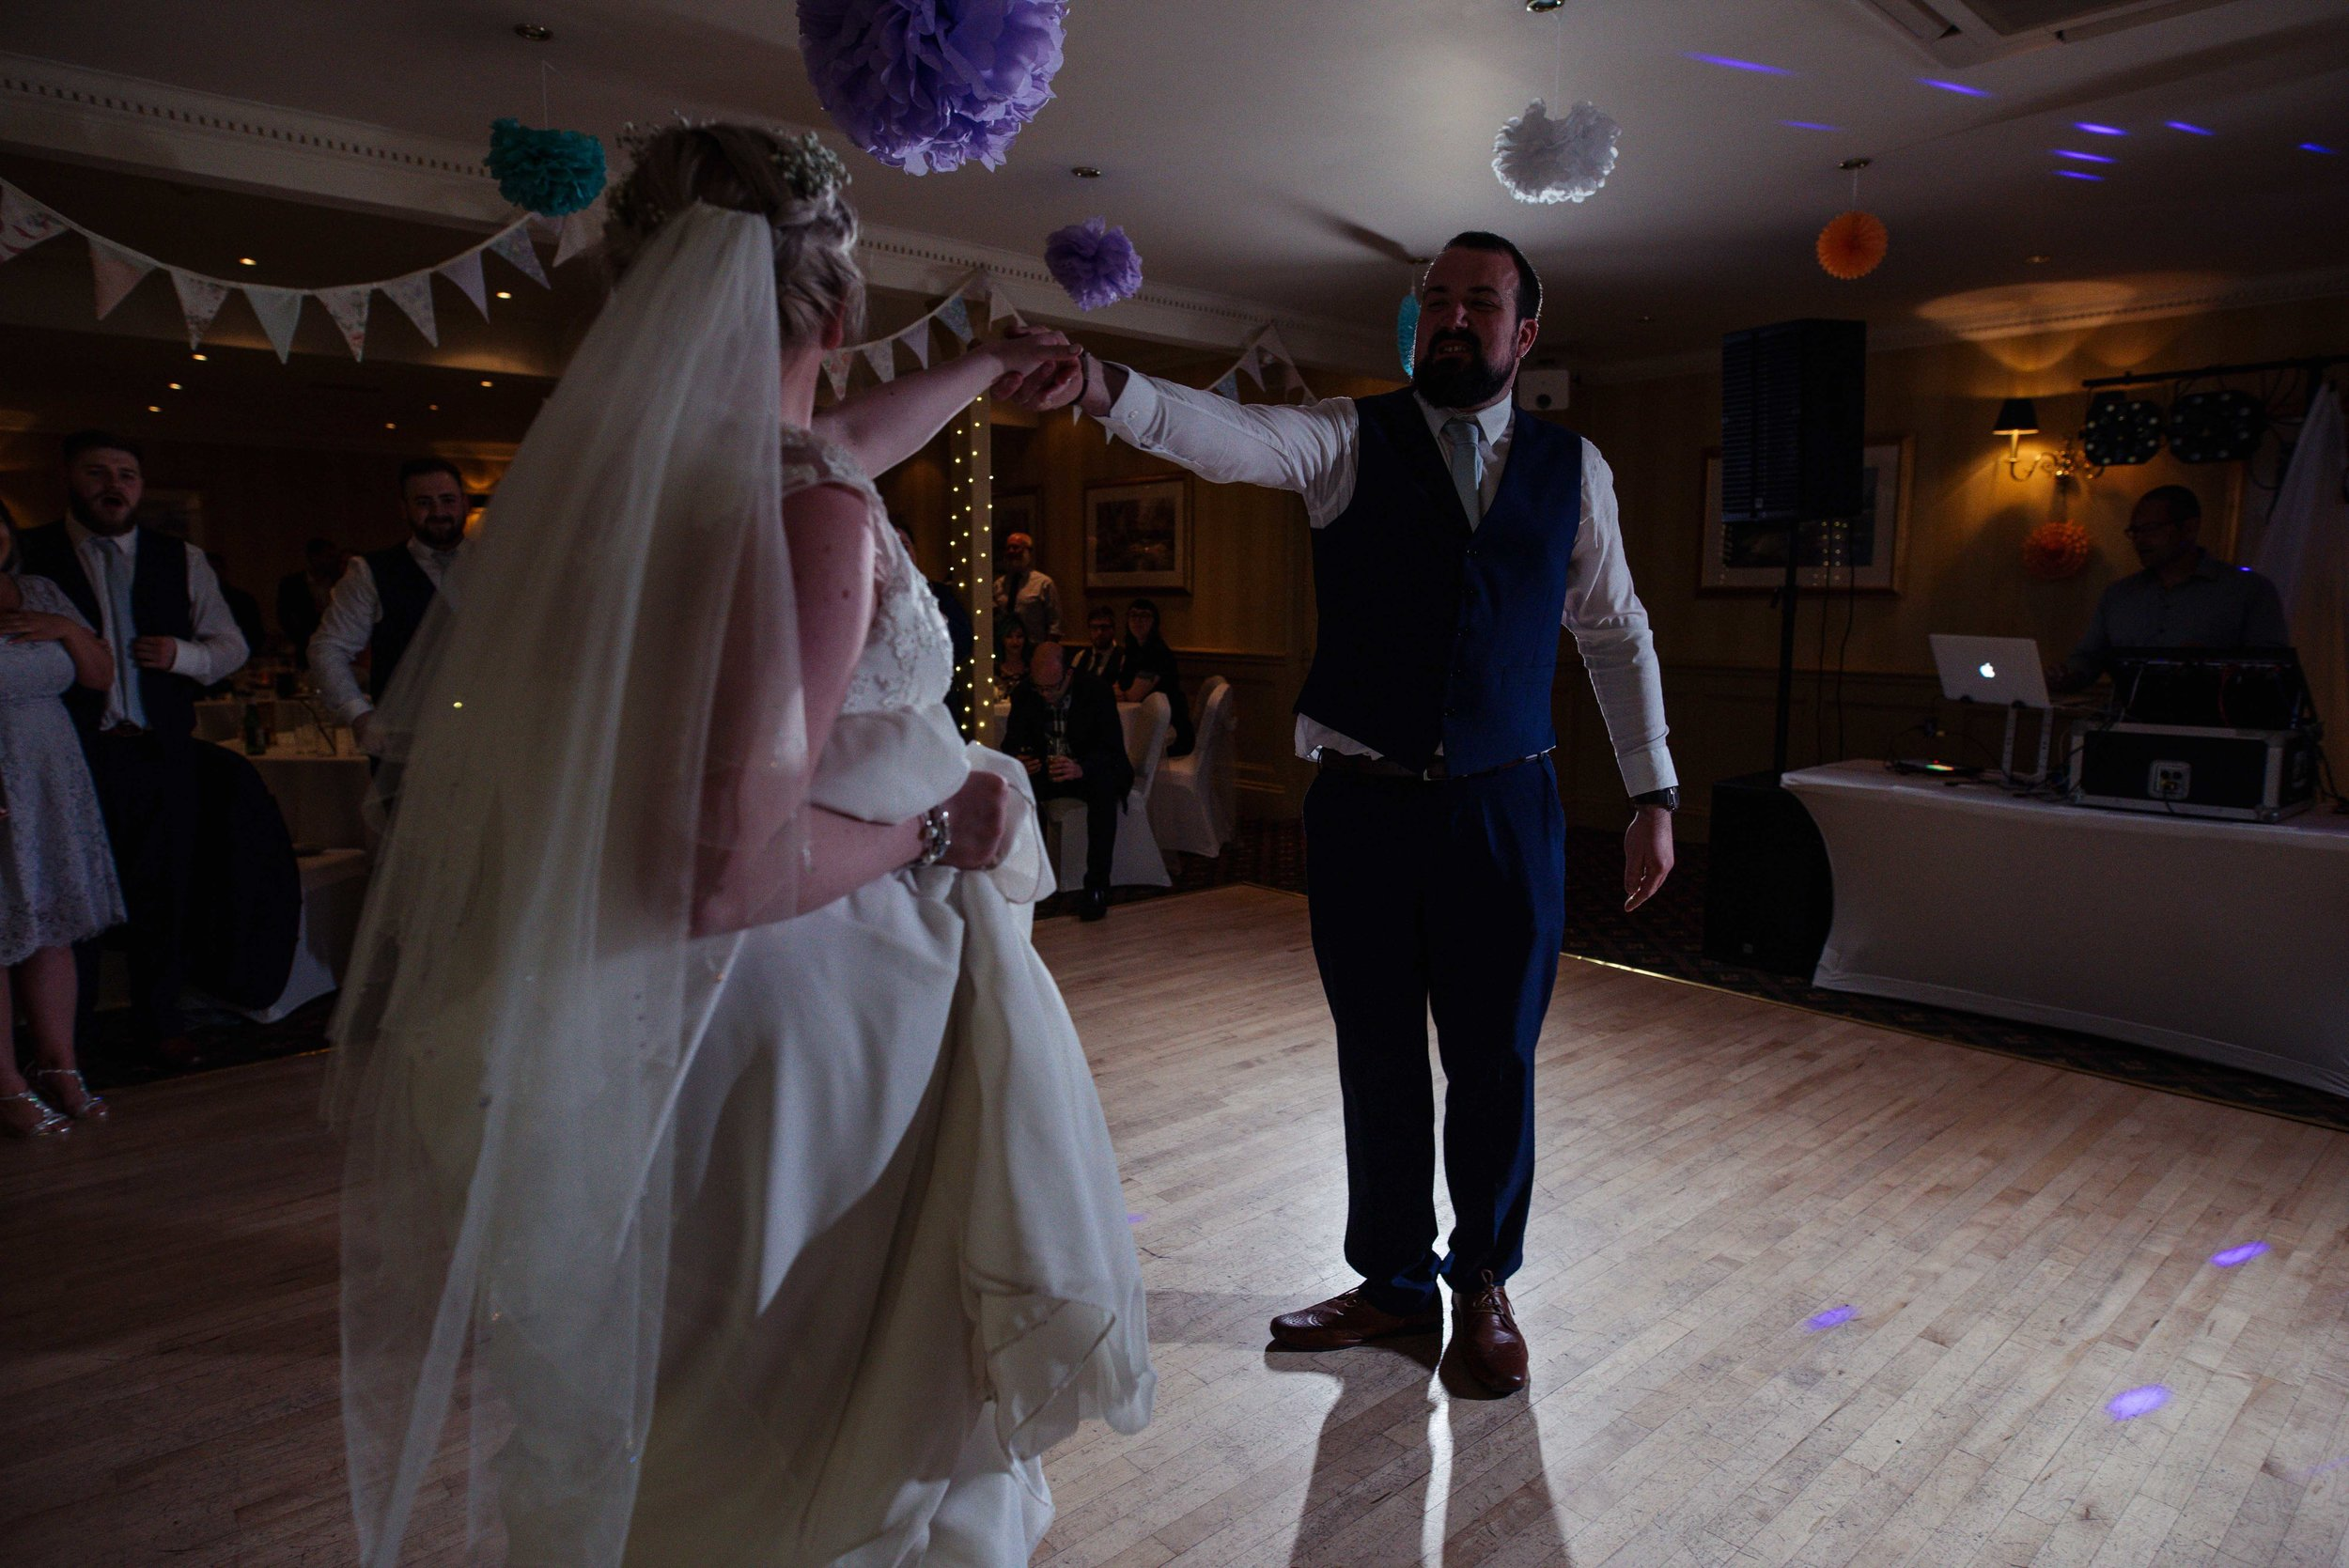 The groom is visible during the bride and grooms first dance together